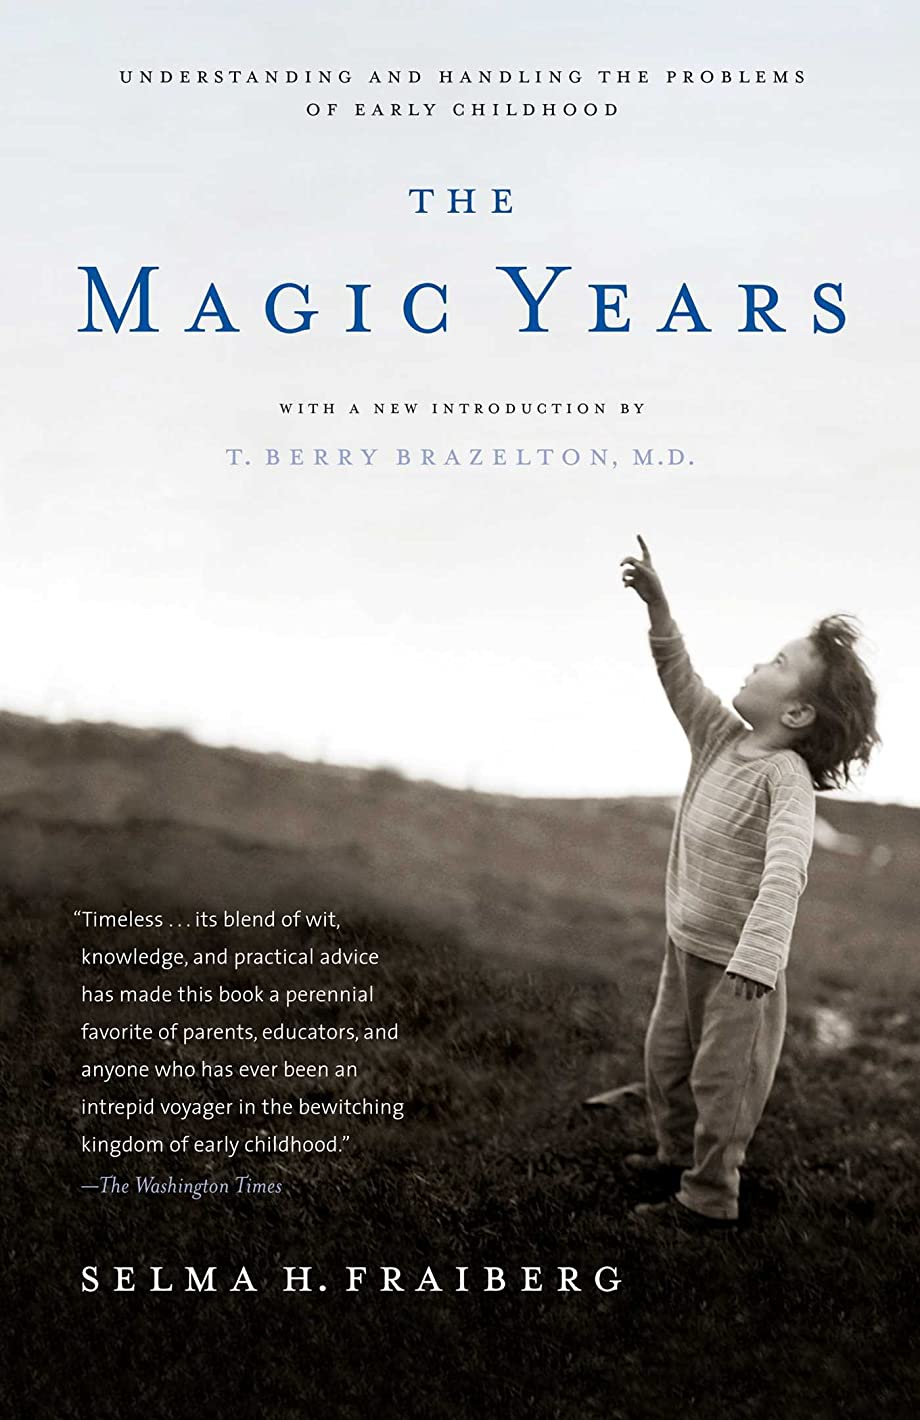 期待する口ひげ酸The Magic Years: Understanding and Handling the Problems of Early Childhood (English Edition)